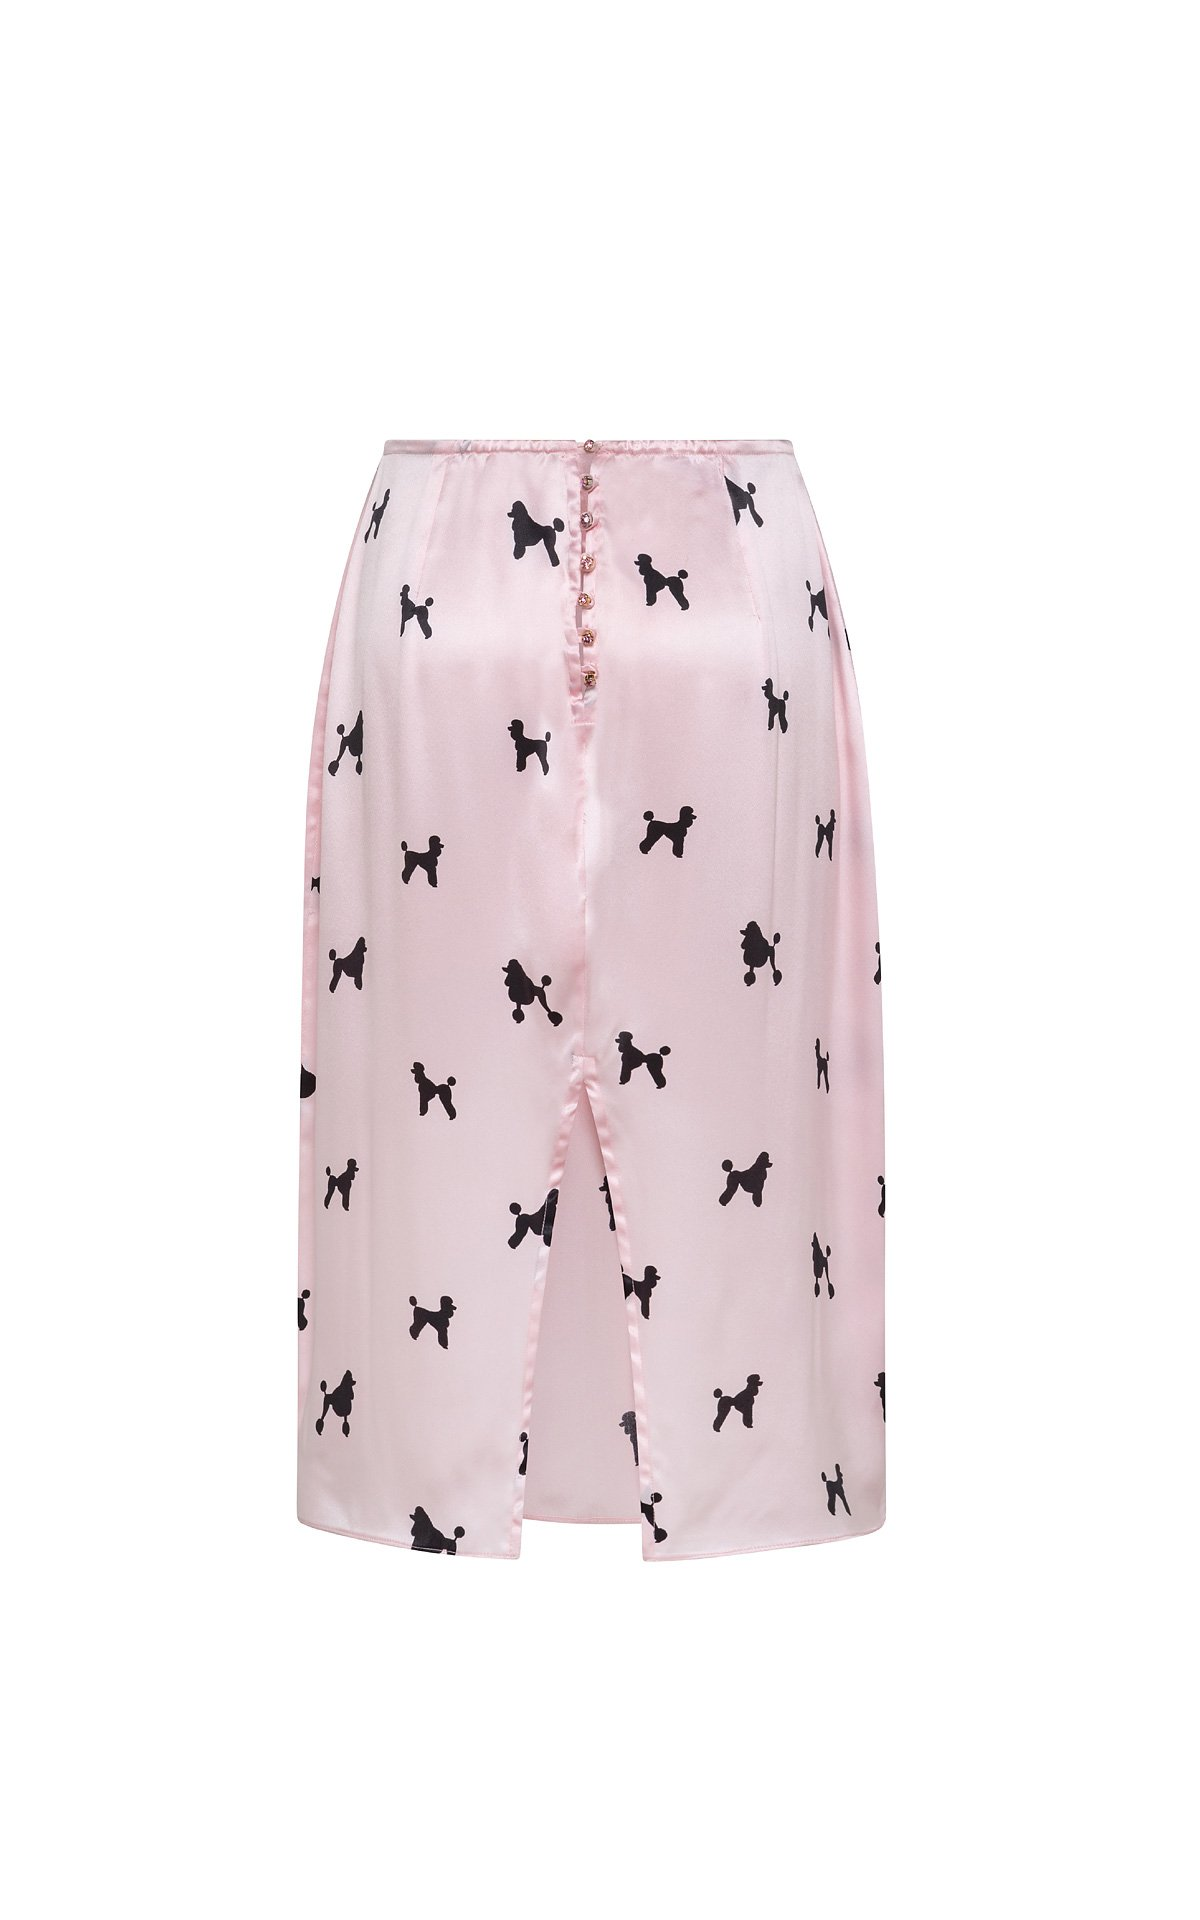 PINK-DOG-COLLECTION_GONNA_RETRO